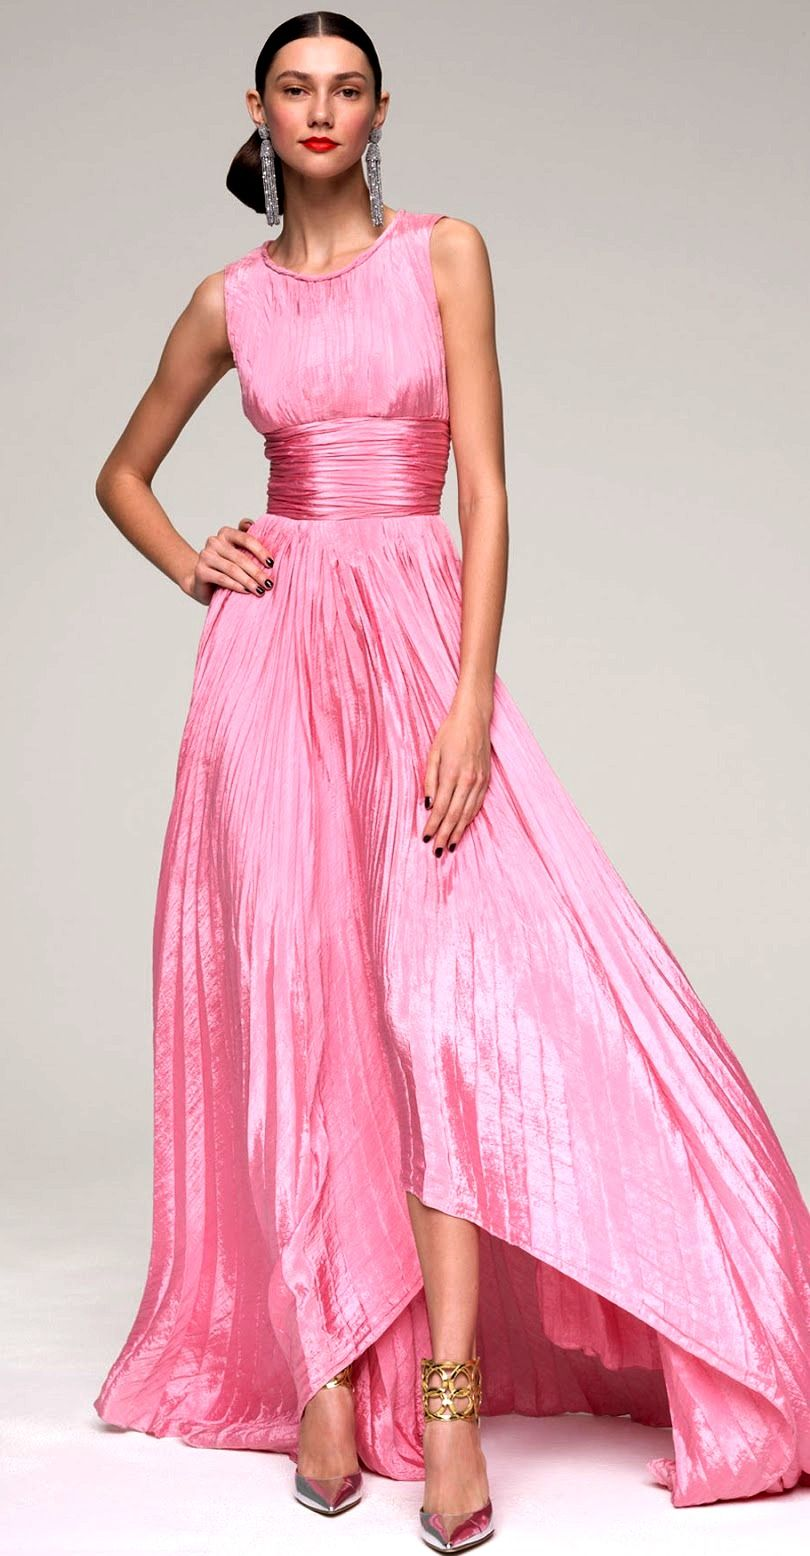 82 Times Oscar de la Renta Stopped Us in Our Tracks | Gowns, Oscar ...